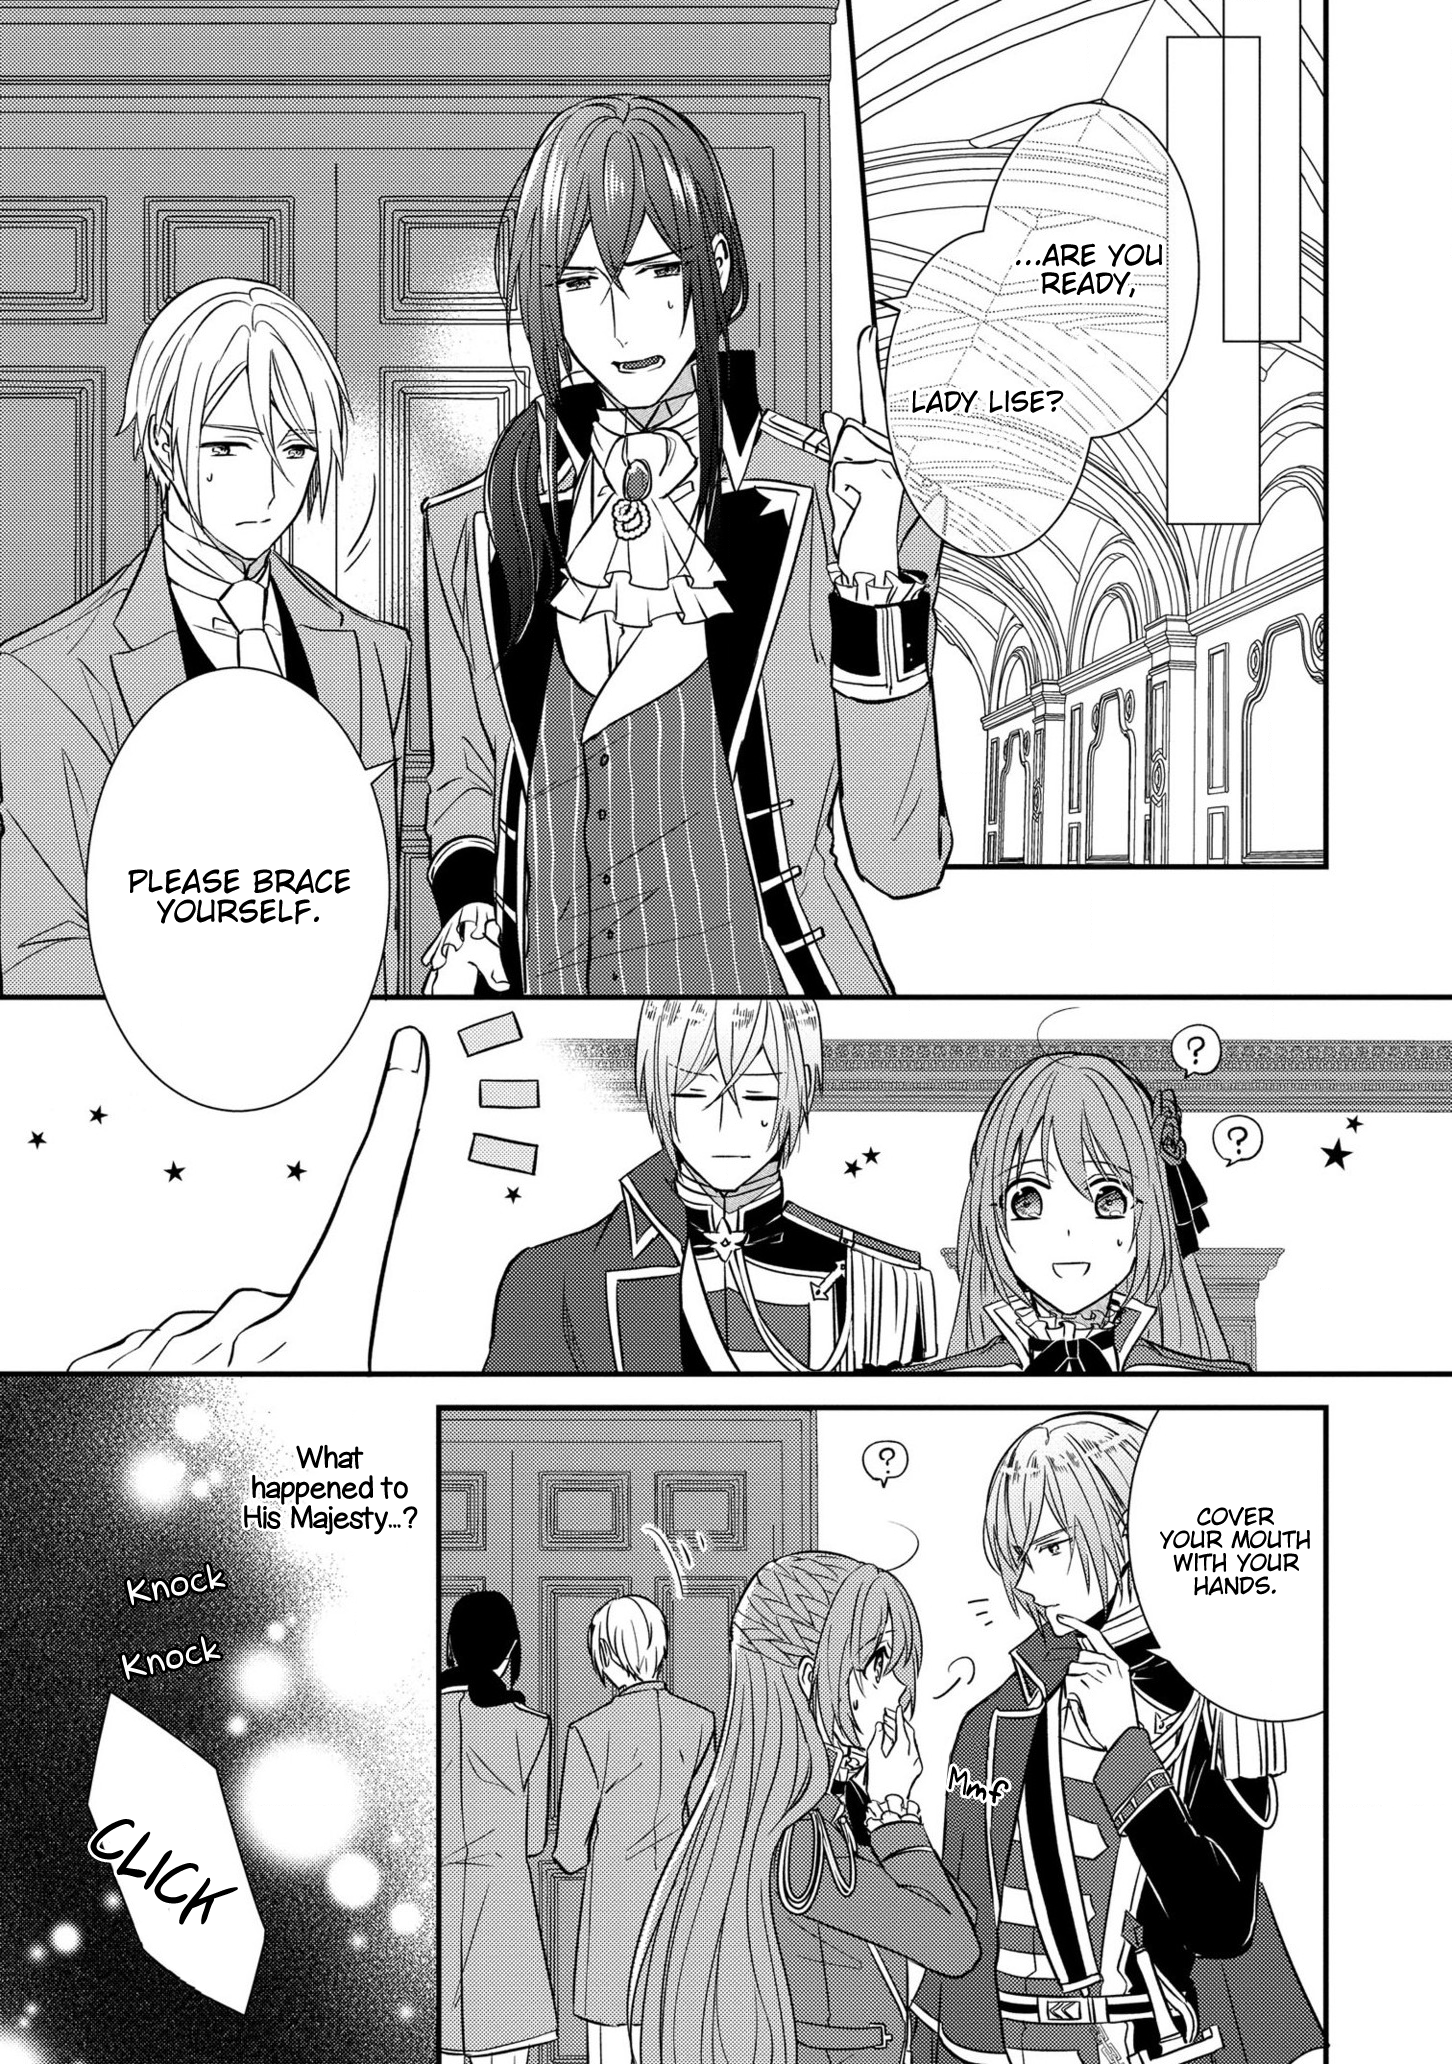 Manga The Emperor Hopes for the Court Lady as His Bride - Chapter 10 Page 5